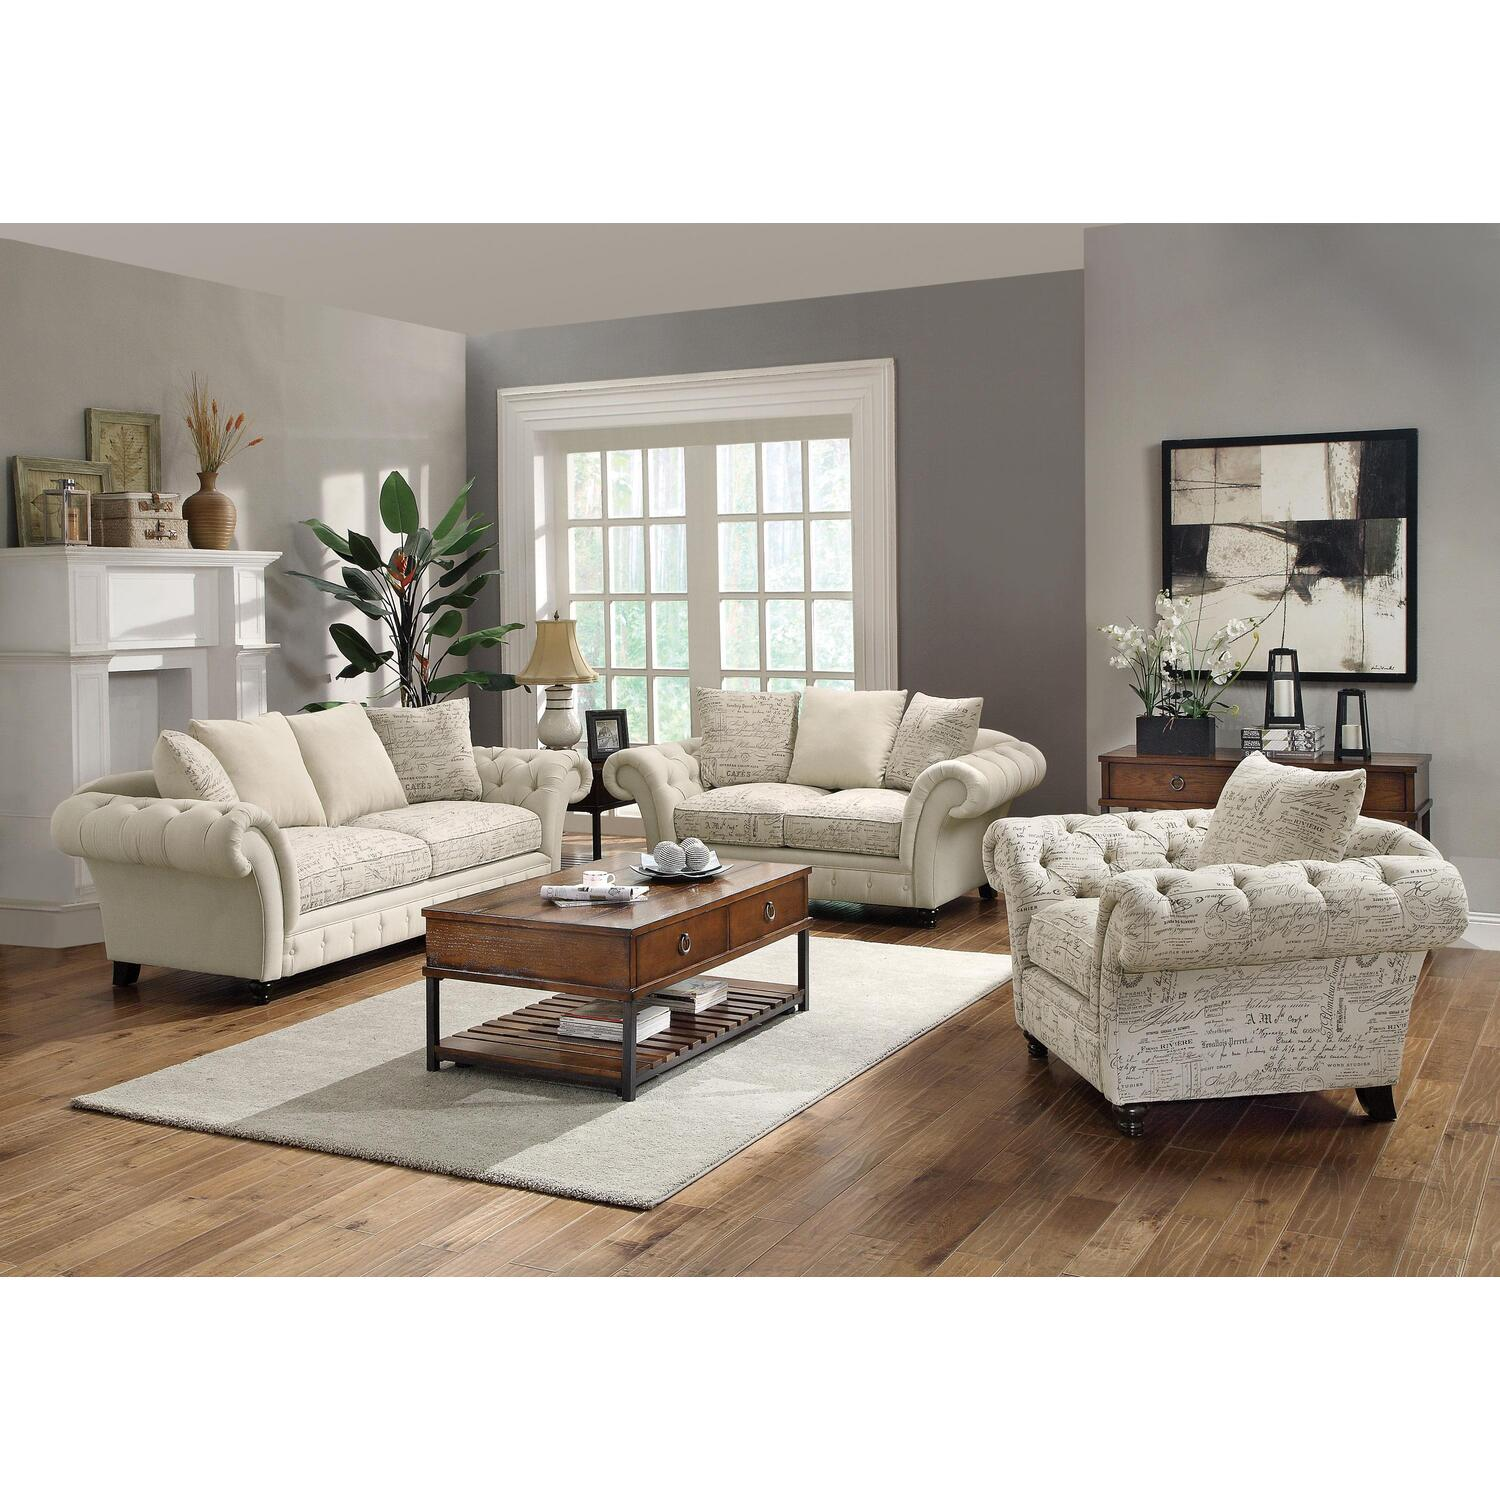 setting up a living room home willow living room set by oj commerce 21710